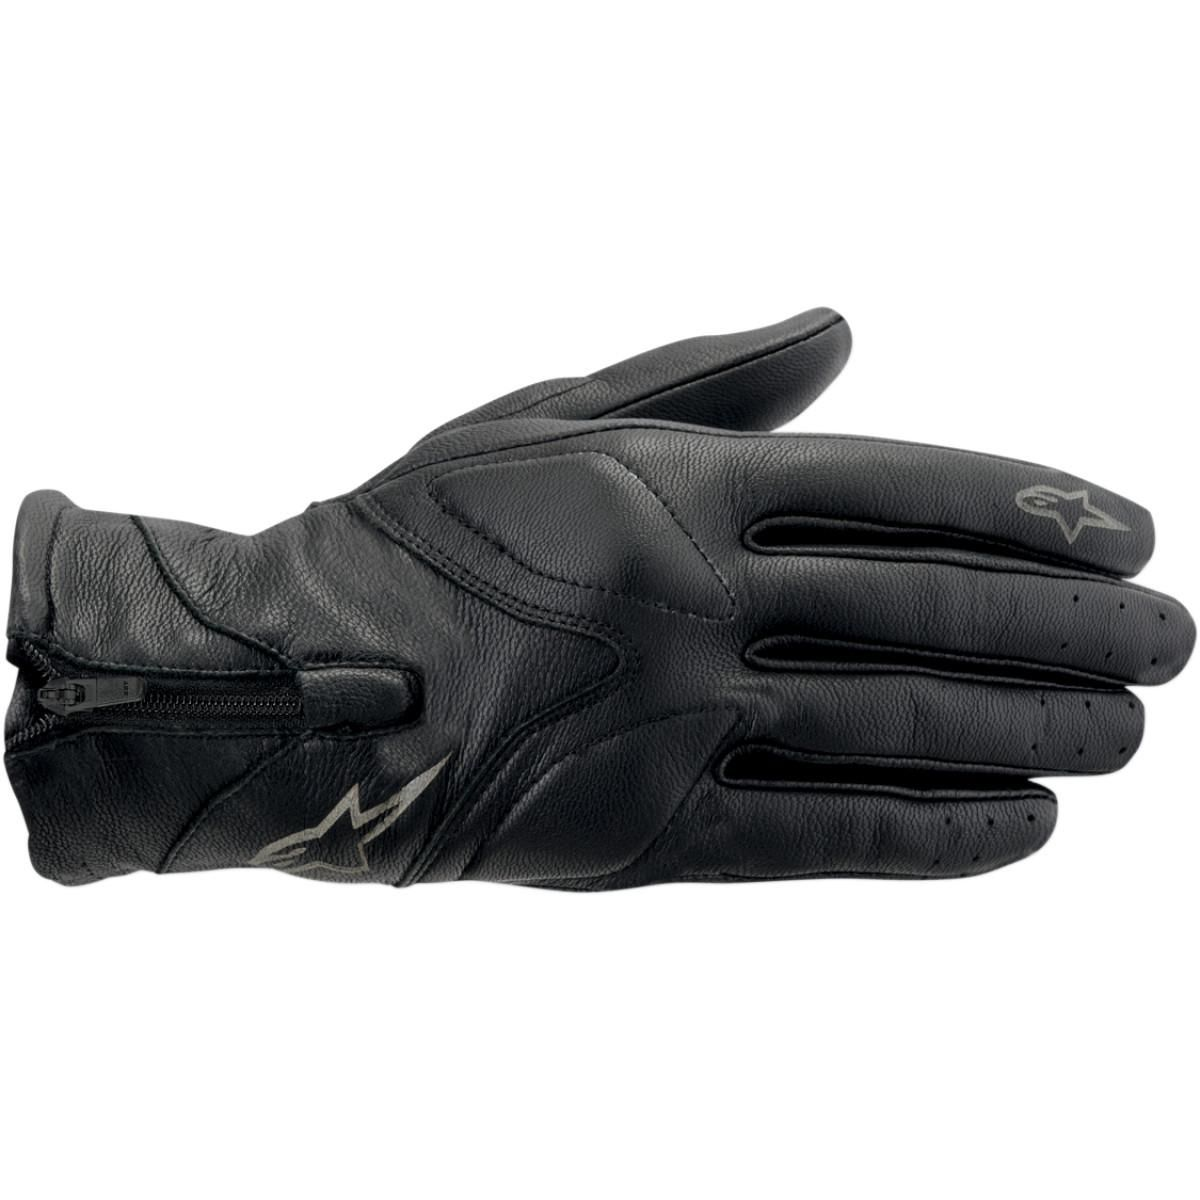 Womens black leather gloves medium - Special Offers 2013 Alpinestars Stella Vika Womens Motorcycle Gloves Medium In Stock Free Shipping You Can Save More Money